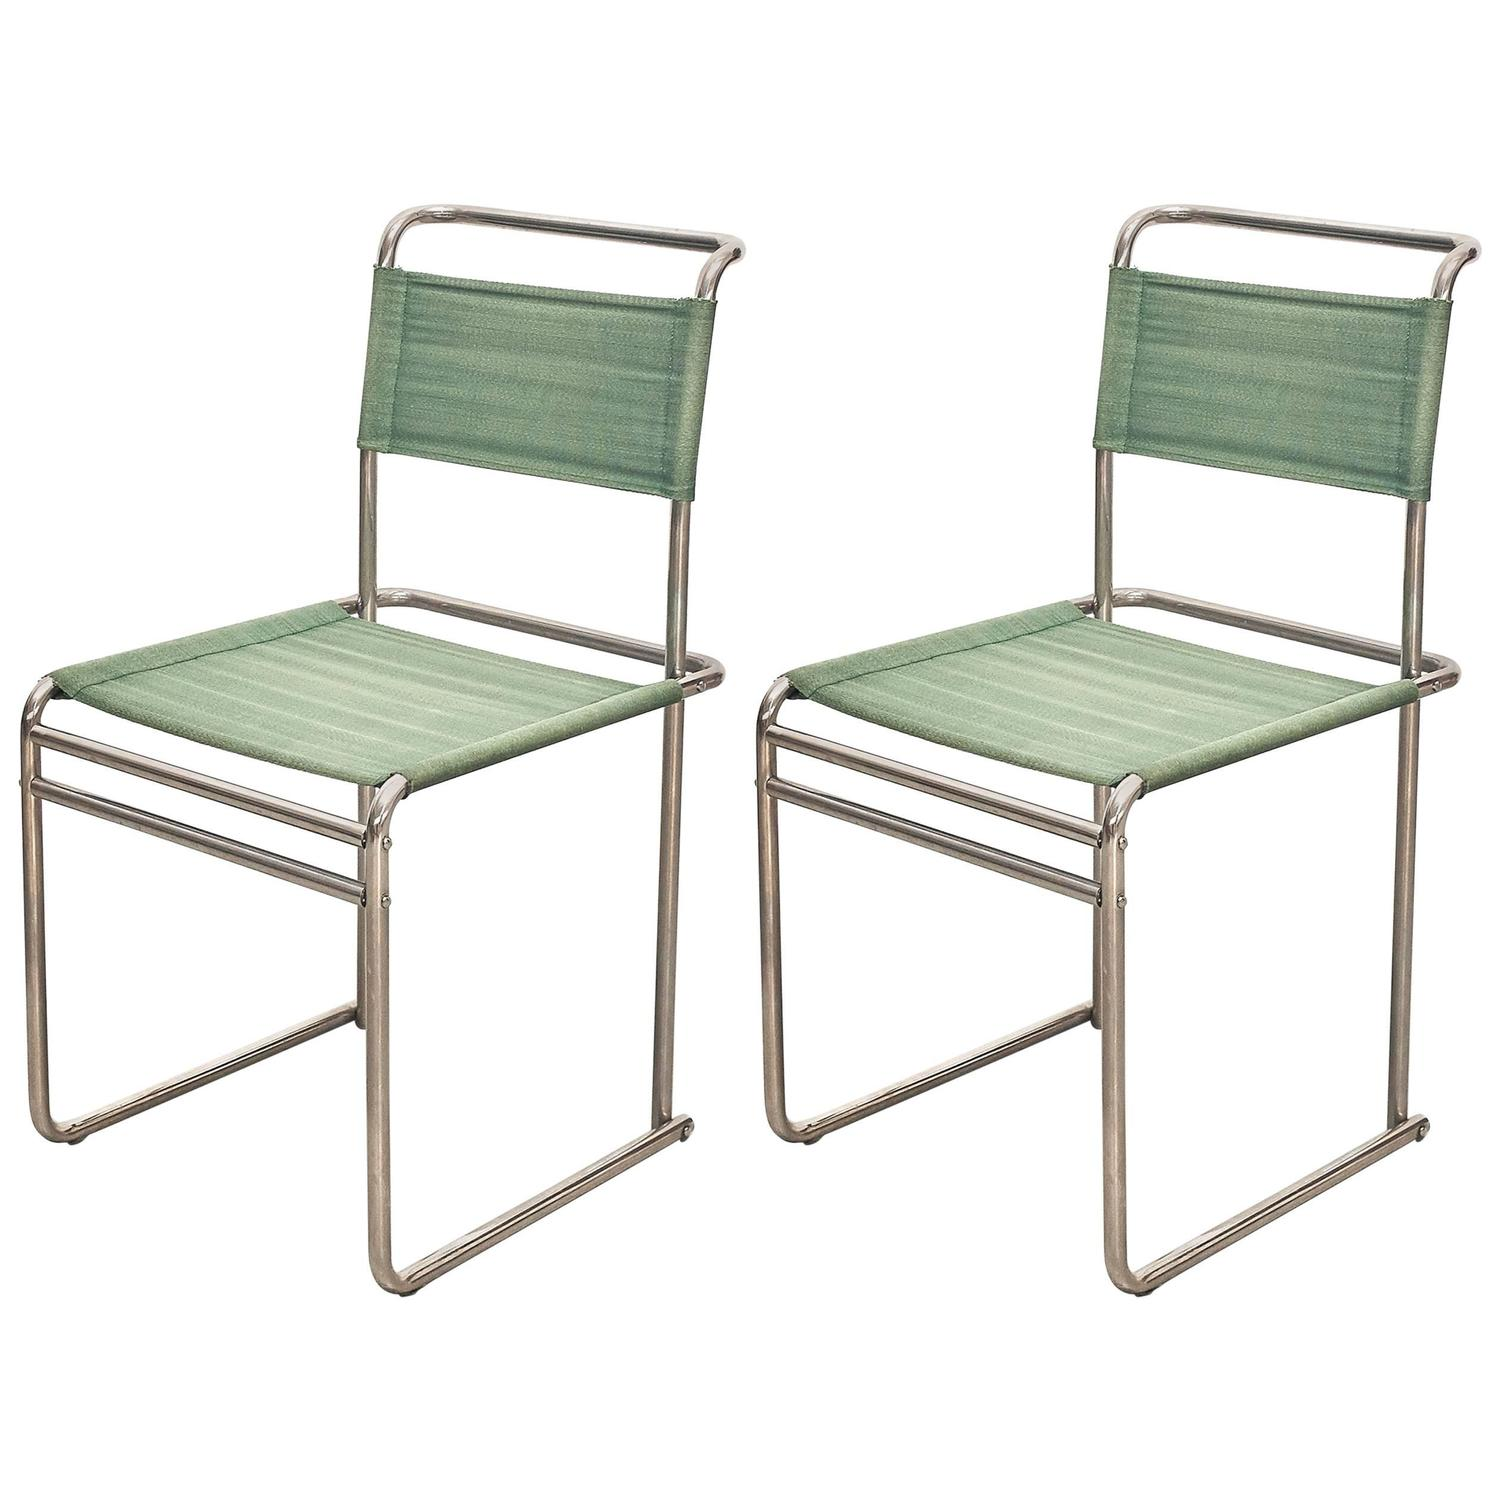 Rare Thonet Marcel Breuer Theater Chairs from the Andy Warhol